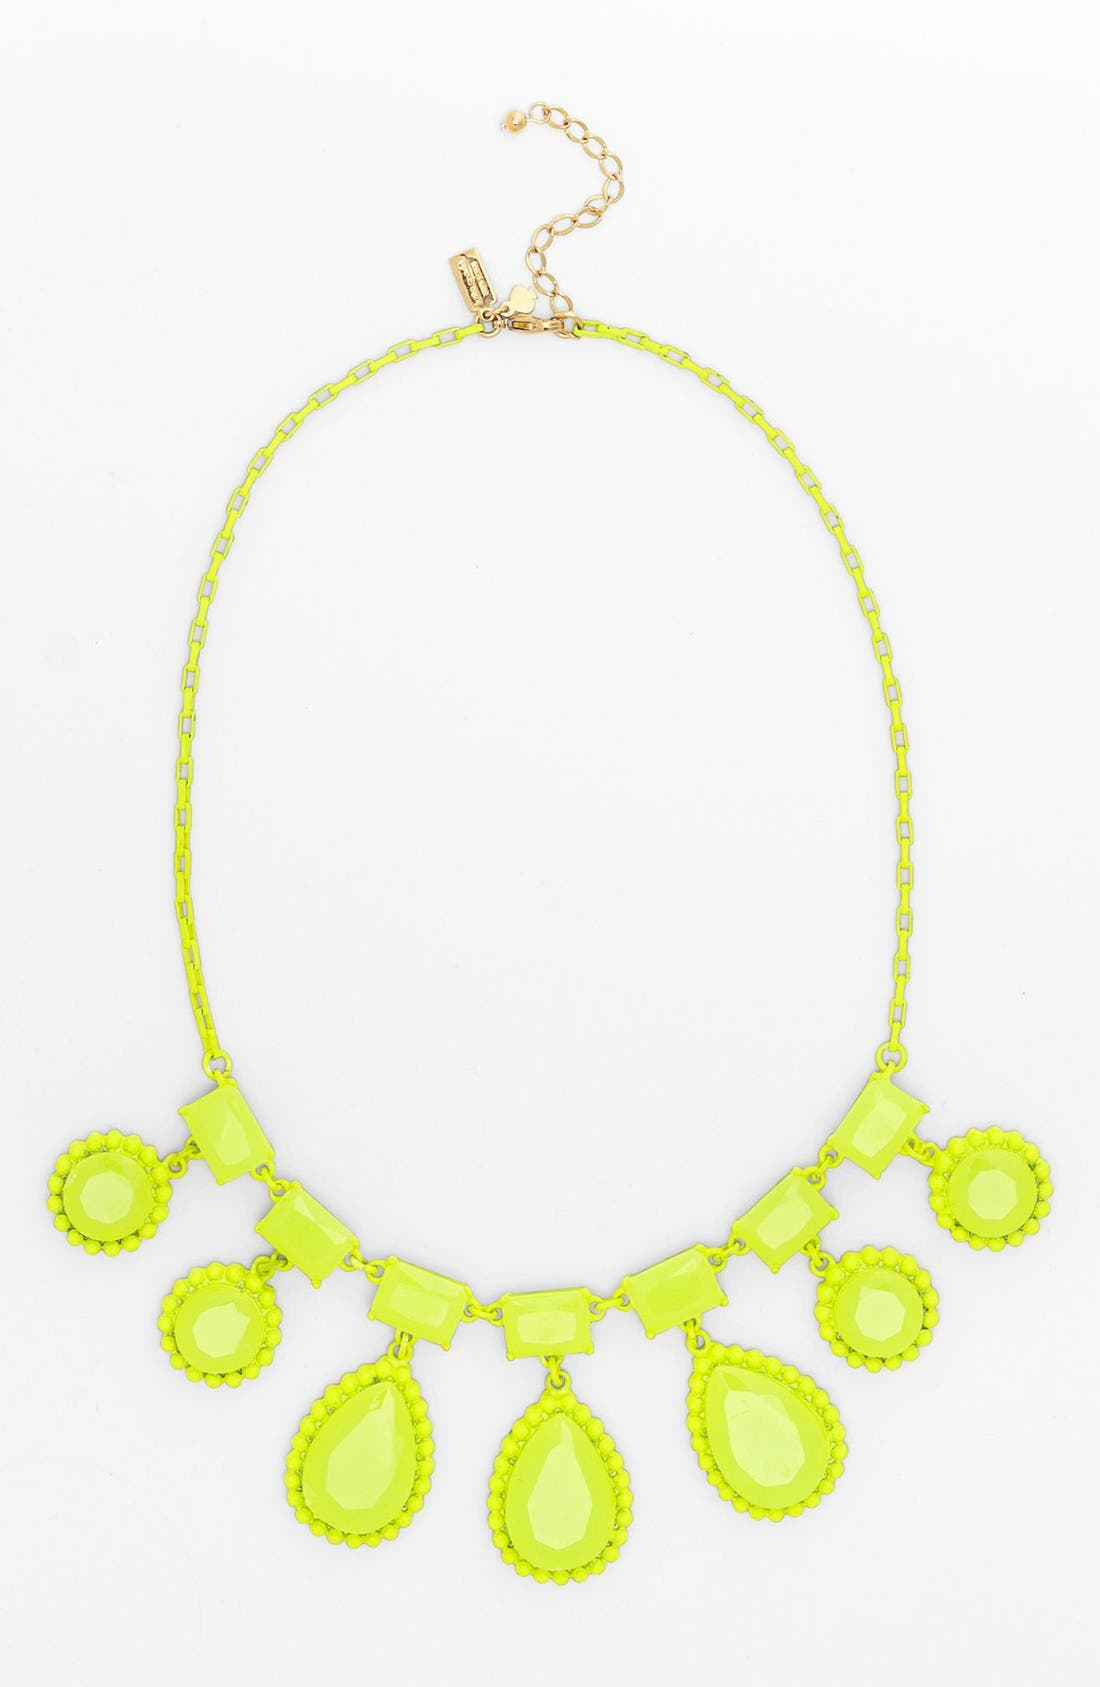 Alternate Image 1 Selected - kate spade new york 'painted jewels' bib statement necklace